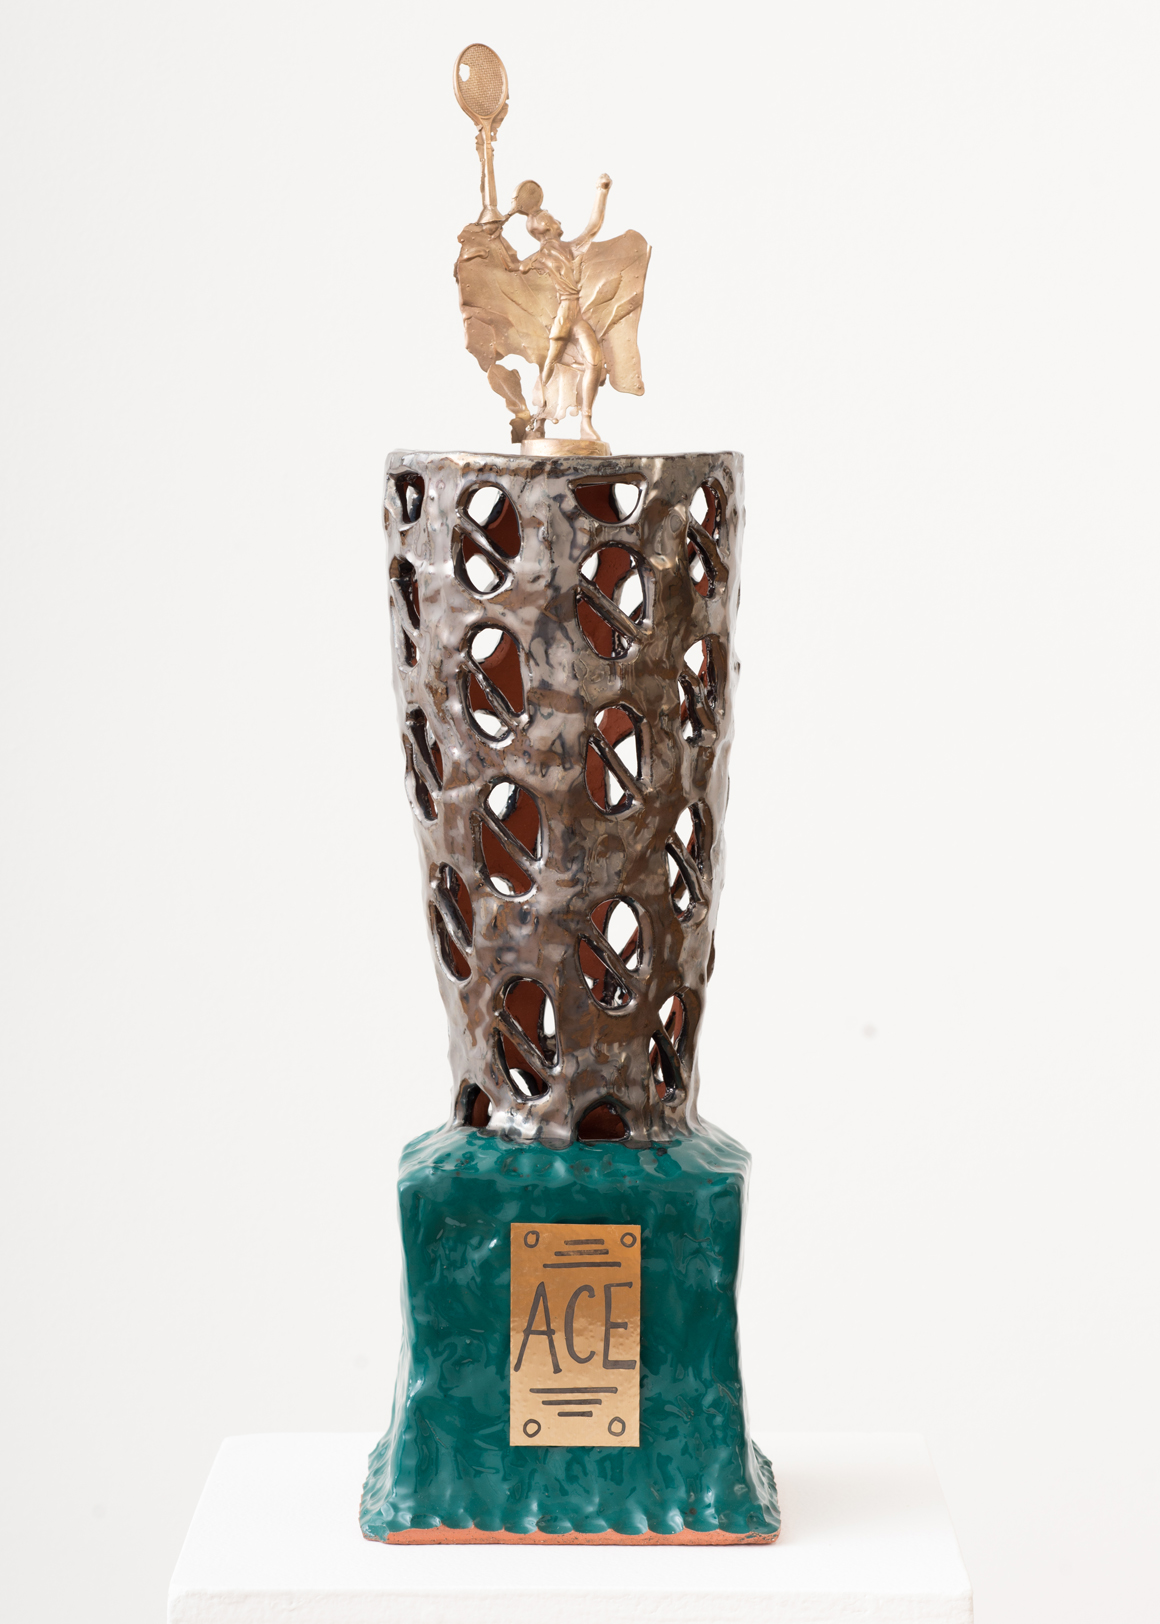 <p><em>Trophy (Ace)</em><span class='media'>Earthenware, glaze, bronze, brass</span>24 x 6.5 x 6.5 in (61 x 16.5 x 16.5 cm)<br>2018<br><a class='inquire' href='mailto:info@gildargallery.com?subject=Artwork Inquiry SKAN0001&body=I am interested in finding out more about Trophy (Ace) by Stephanie Kantor'>Inquire</a></p>